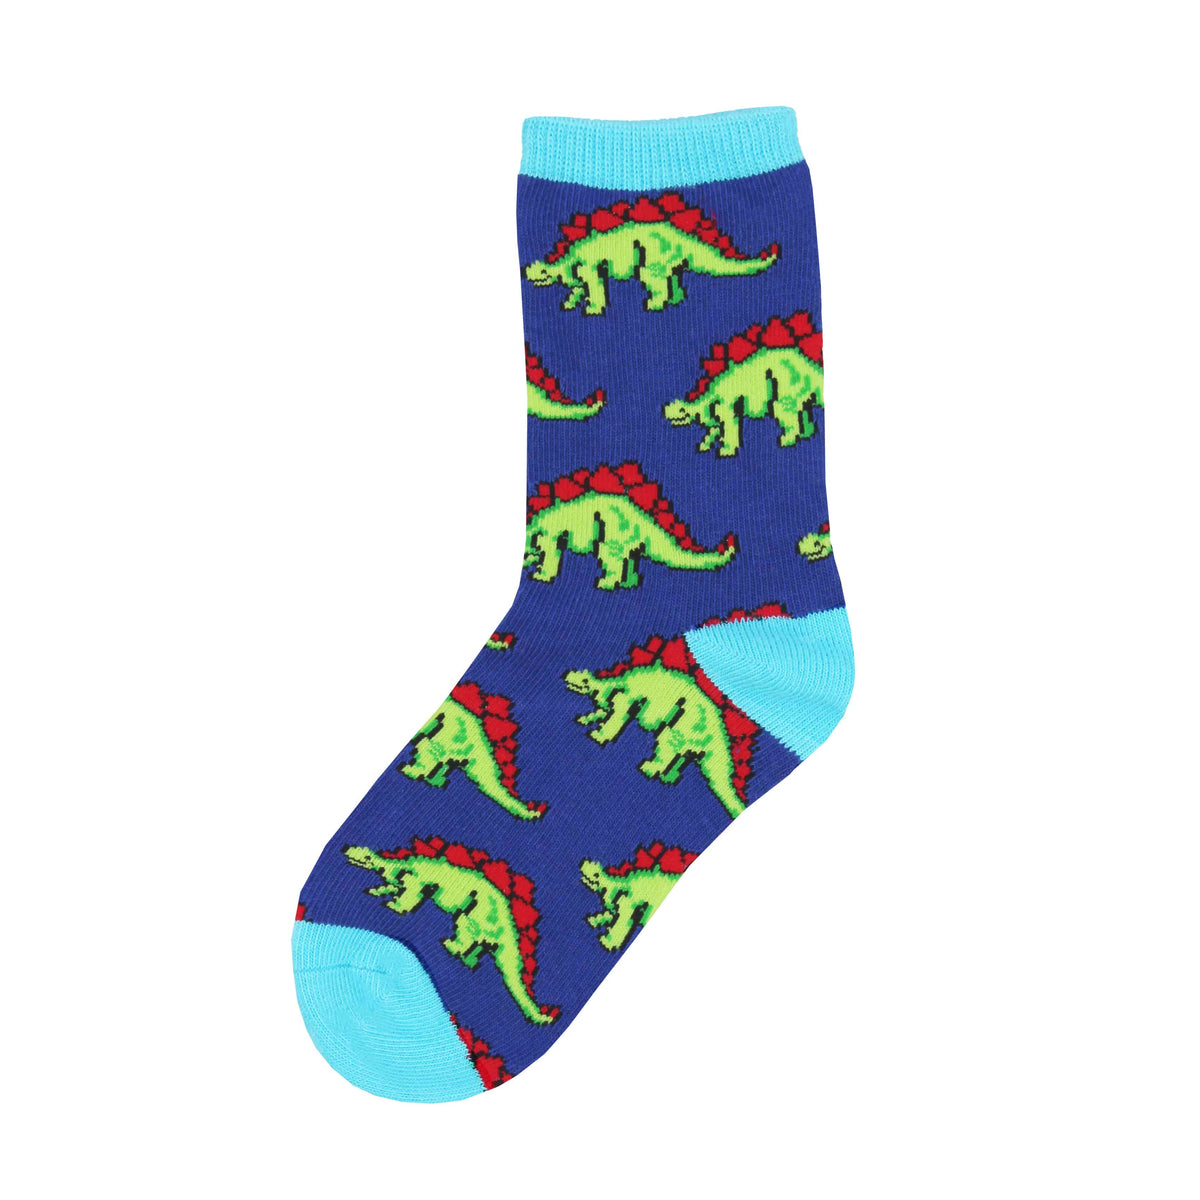 Green and red stegosaurus march across these blue kids' dinosaur socks.